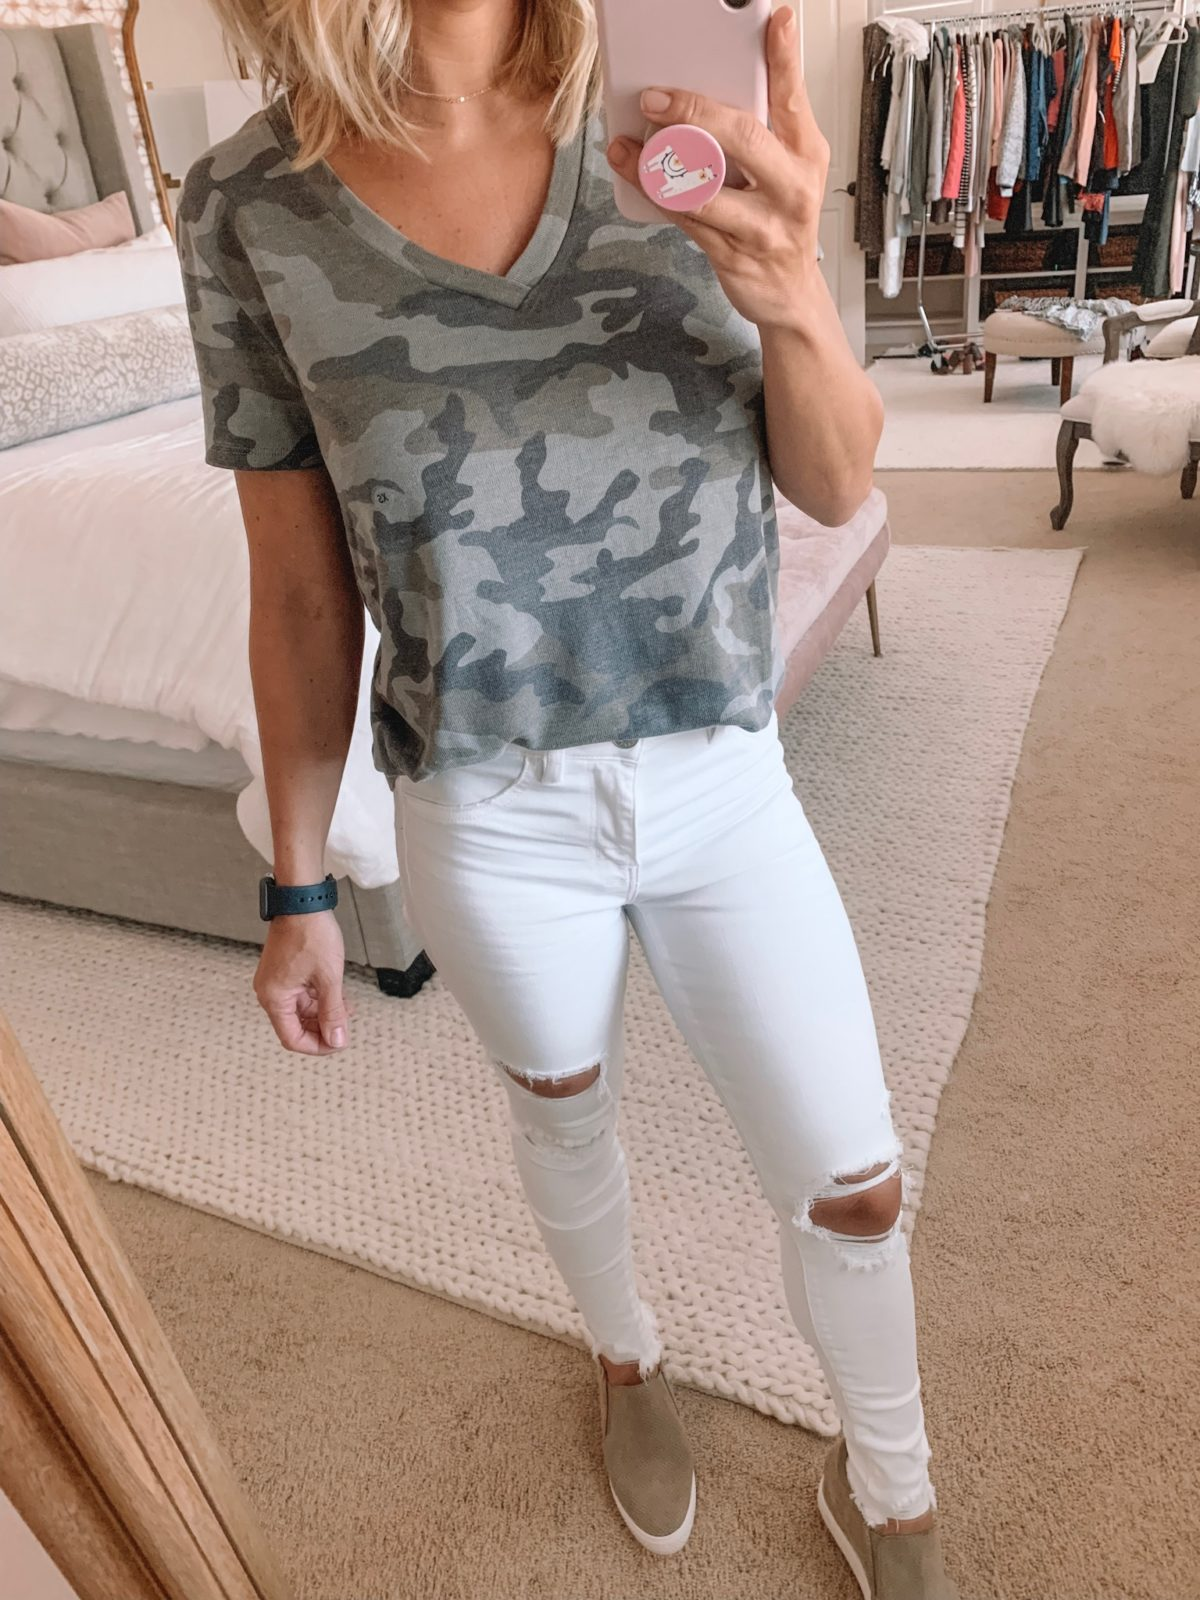 Dressing Room - Camo Top and white jeans